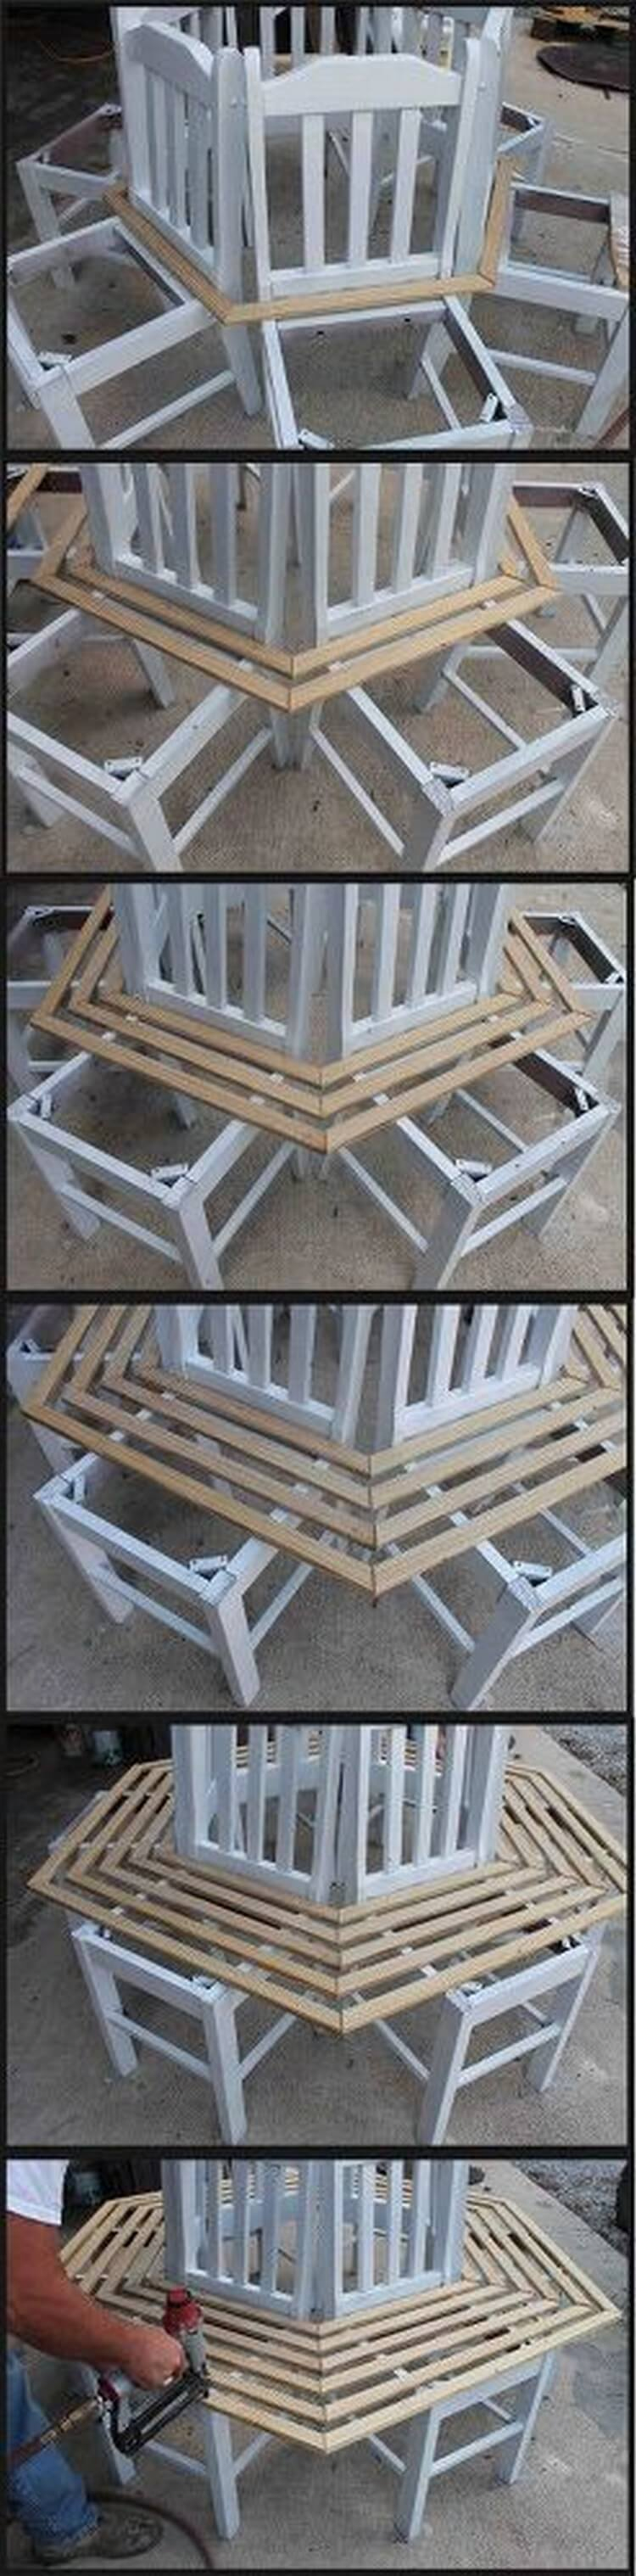 DIY Step bu Step Round Bench